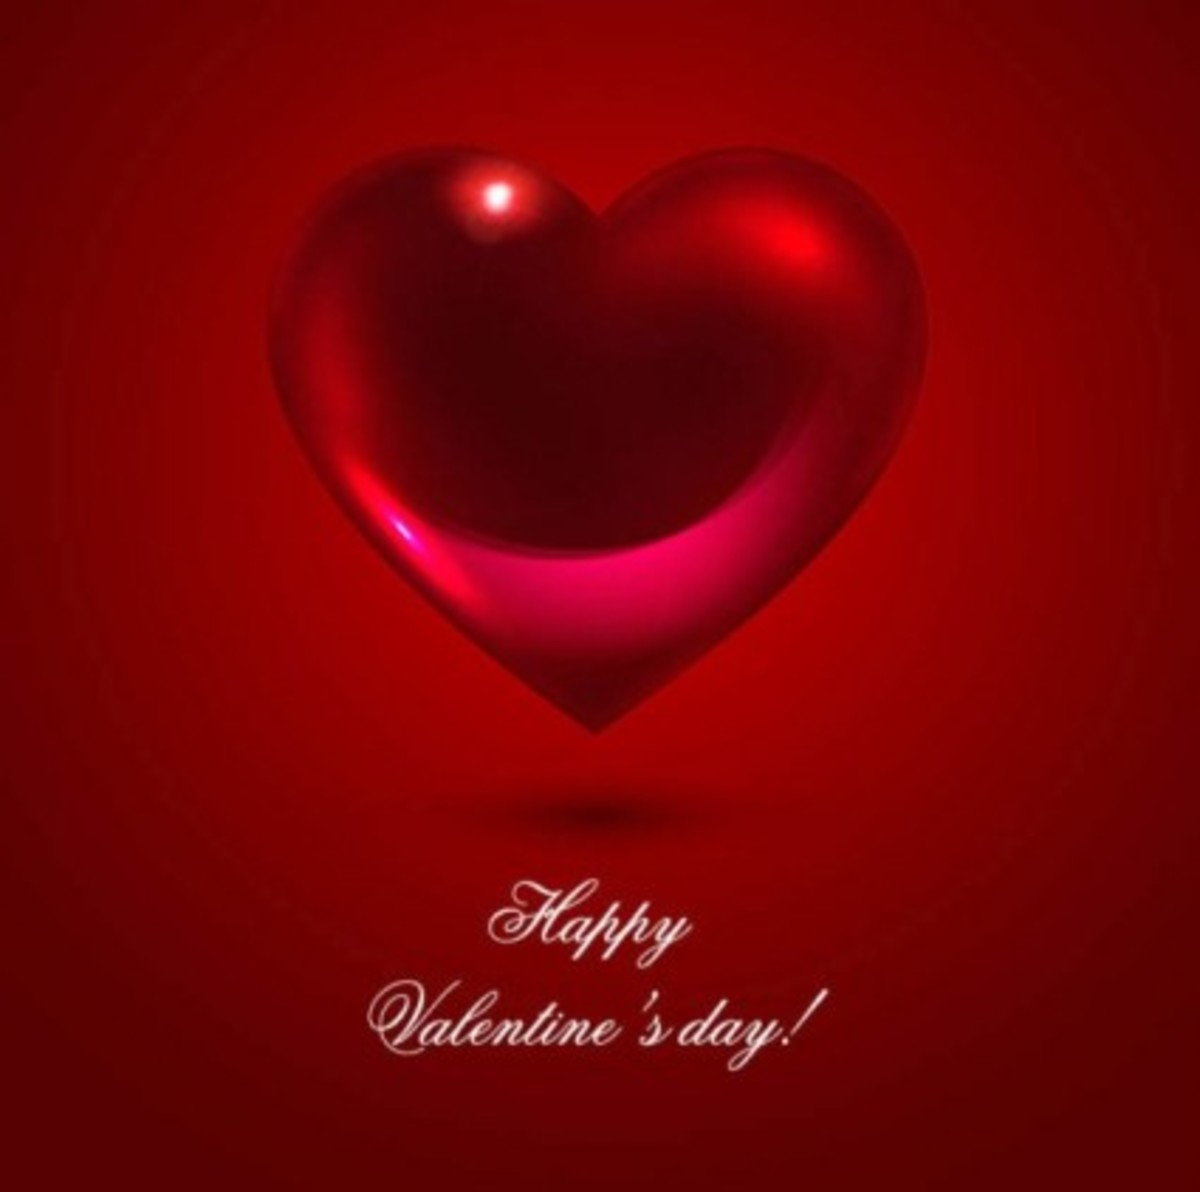 Happy Valentine's Day Image with Red Heart